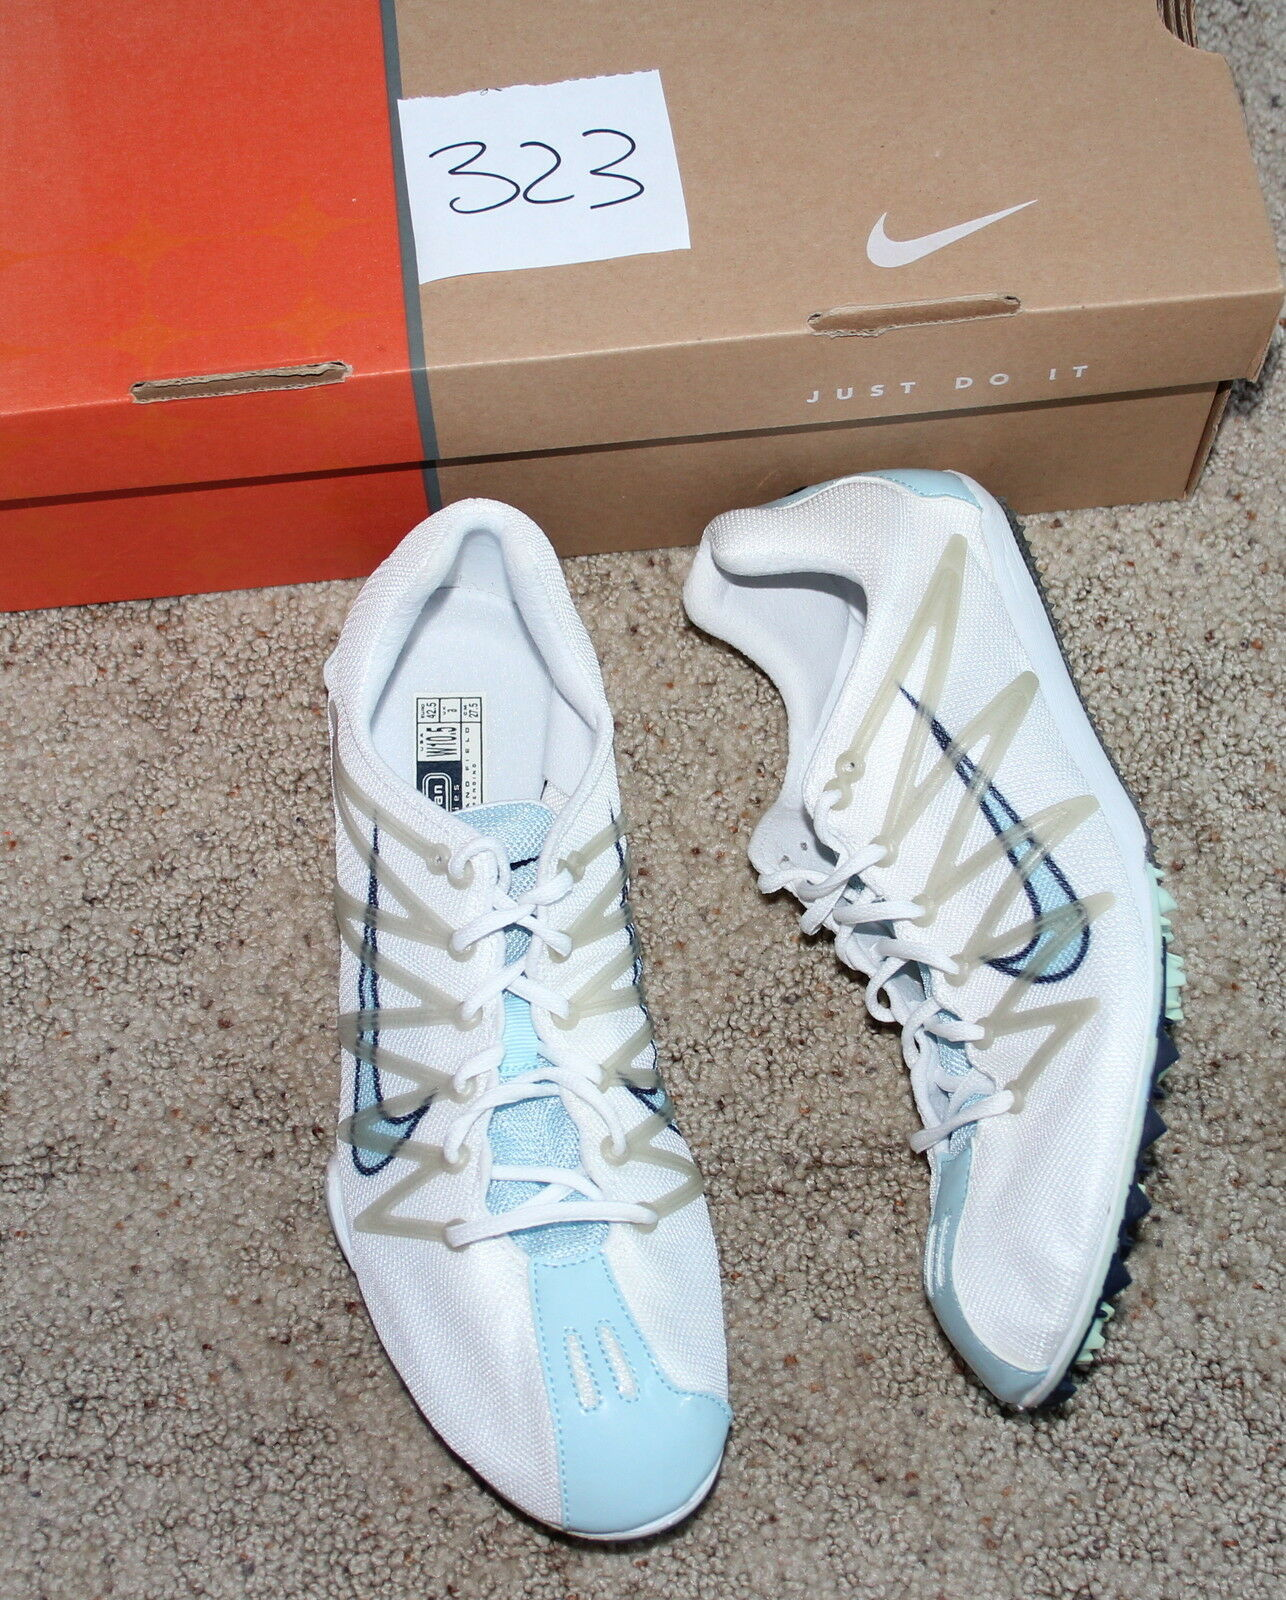 New ZOOM W track cross country spikes Womens running shoes white blue 10.5 42.5